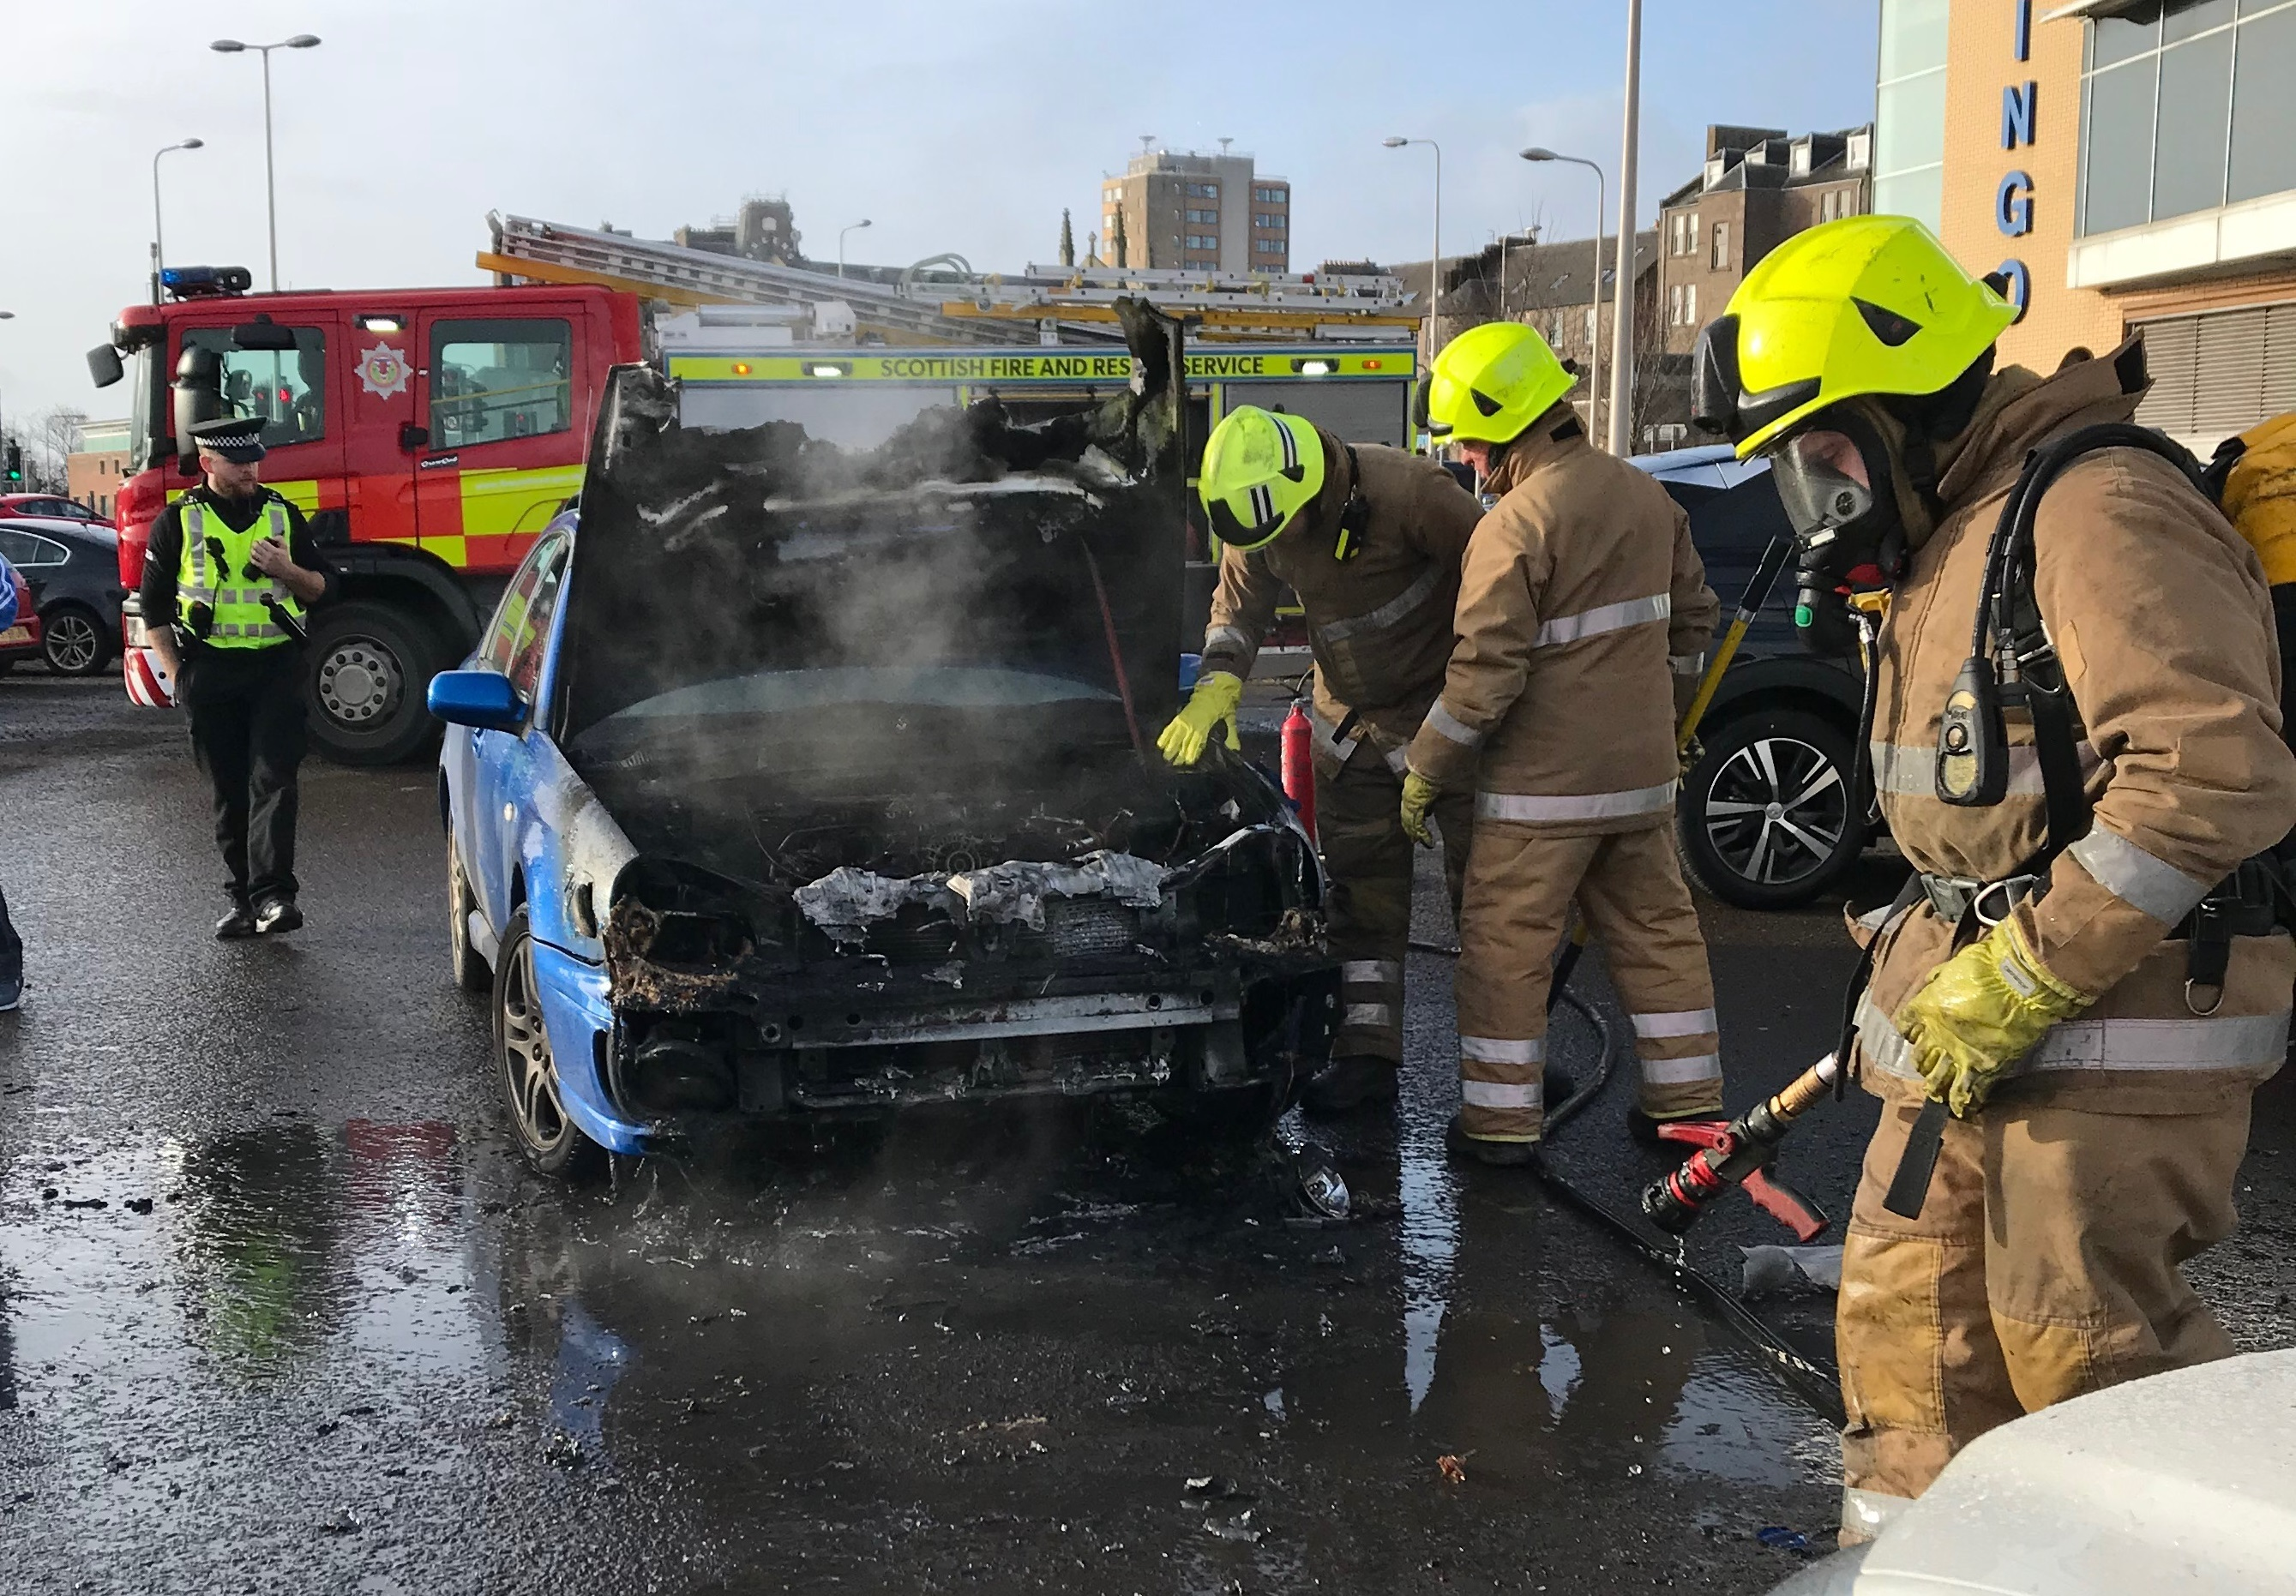 Firefighters dowse down the burnt-out remains of the Subaru Impreza.